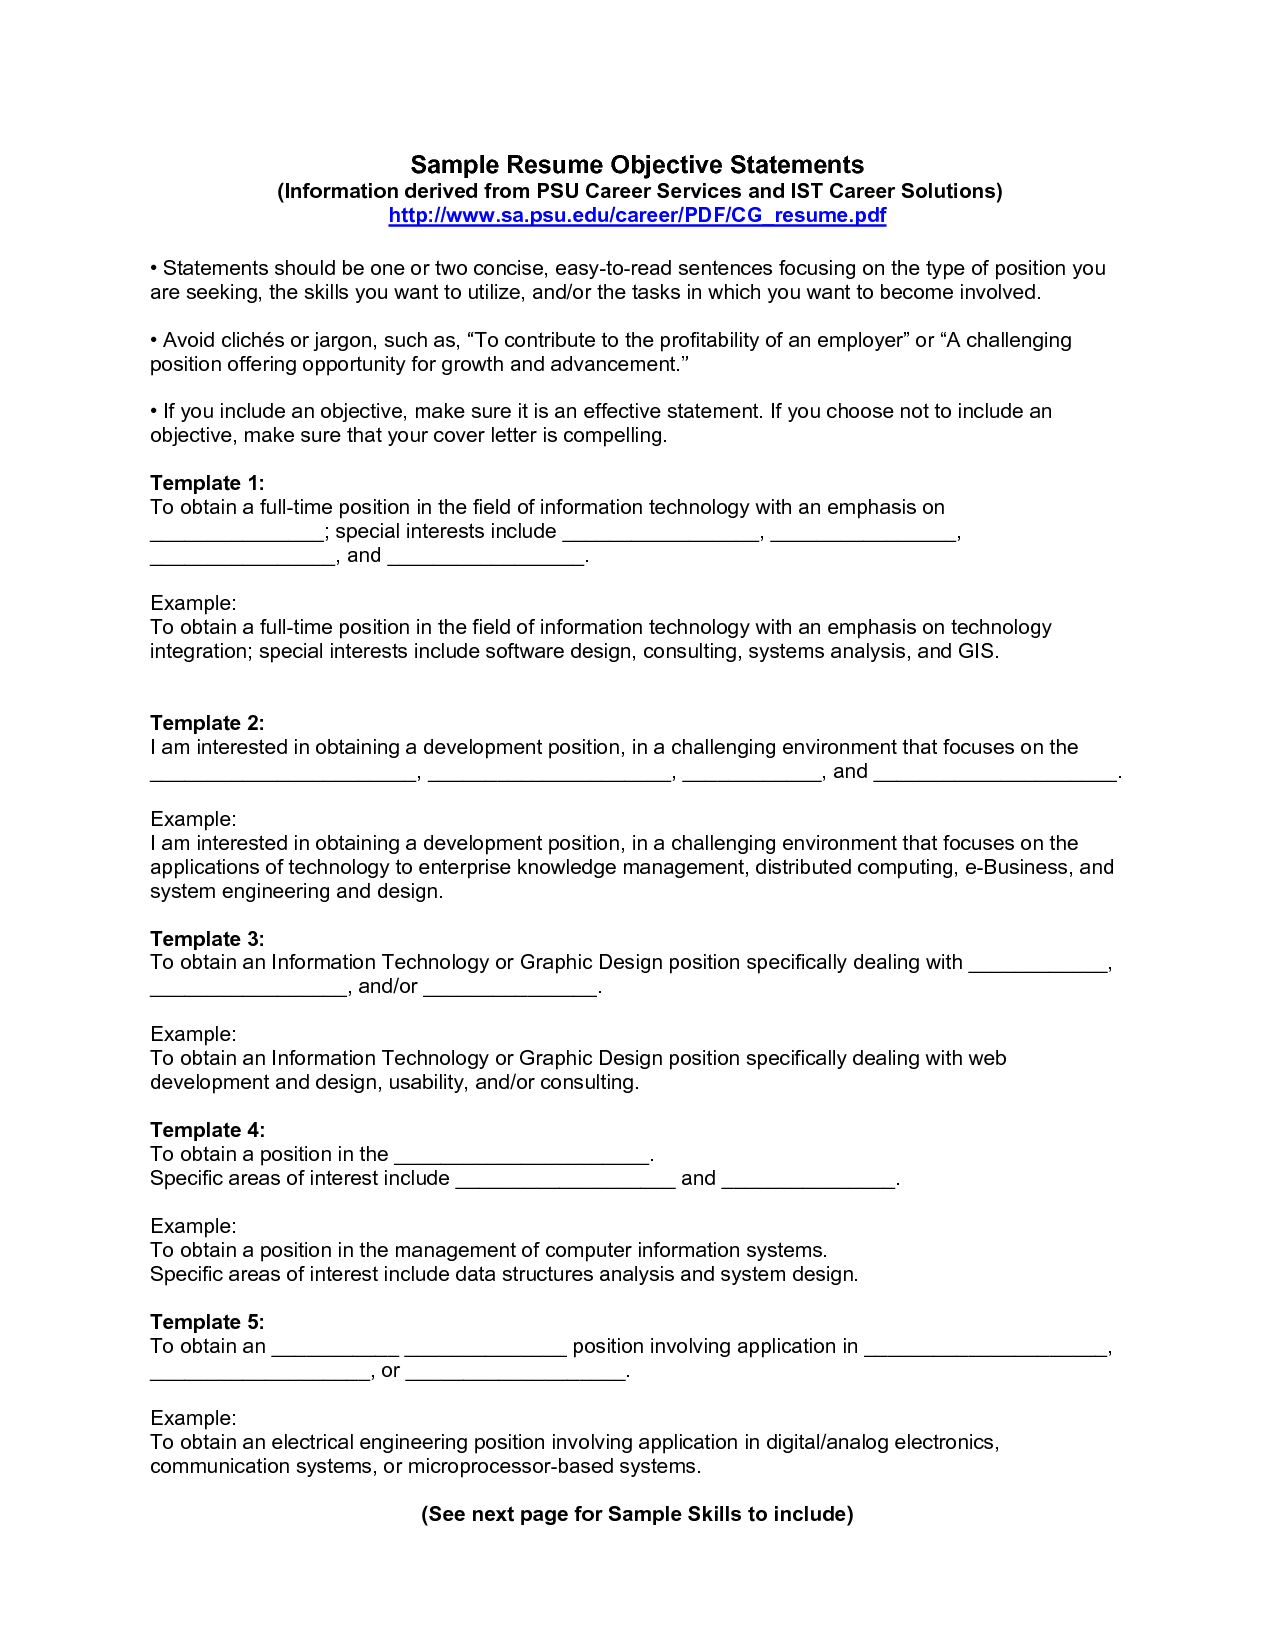 10 Sample Resume Objective Statements. Sap Hcm Resume Sample. Sales Consultant Sample Resume. Resume Sample For Preschool Teacher. Resume Primary Teacher. Us Resume. Front Of House Manager Resume. Sample Resume Example. Resume For Front Desk Position